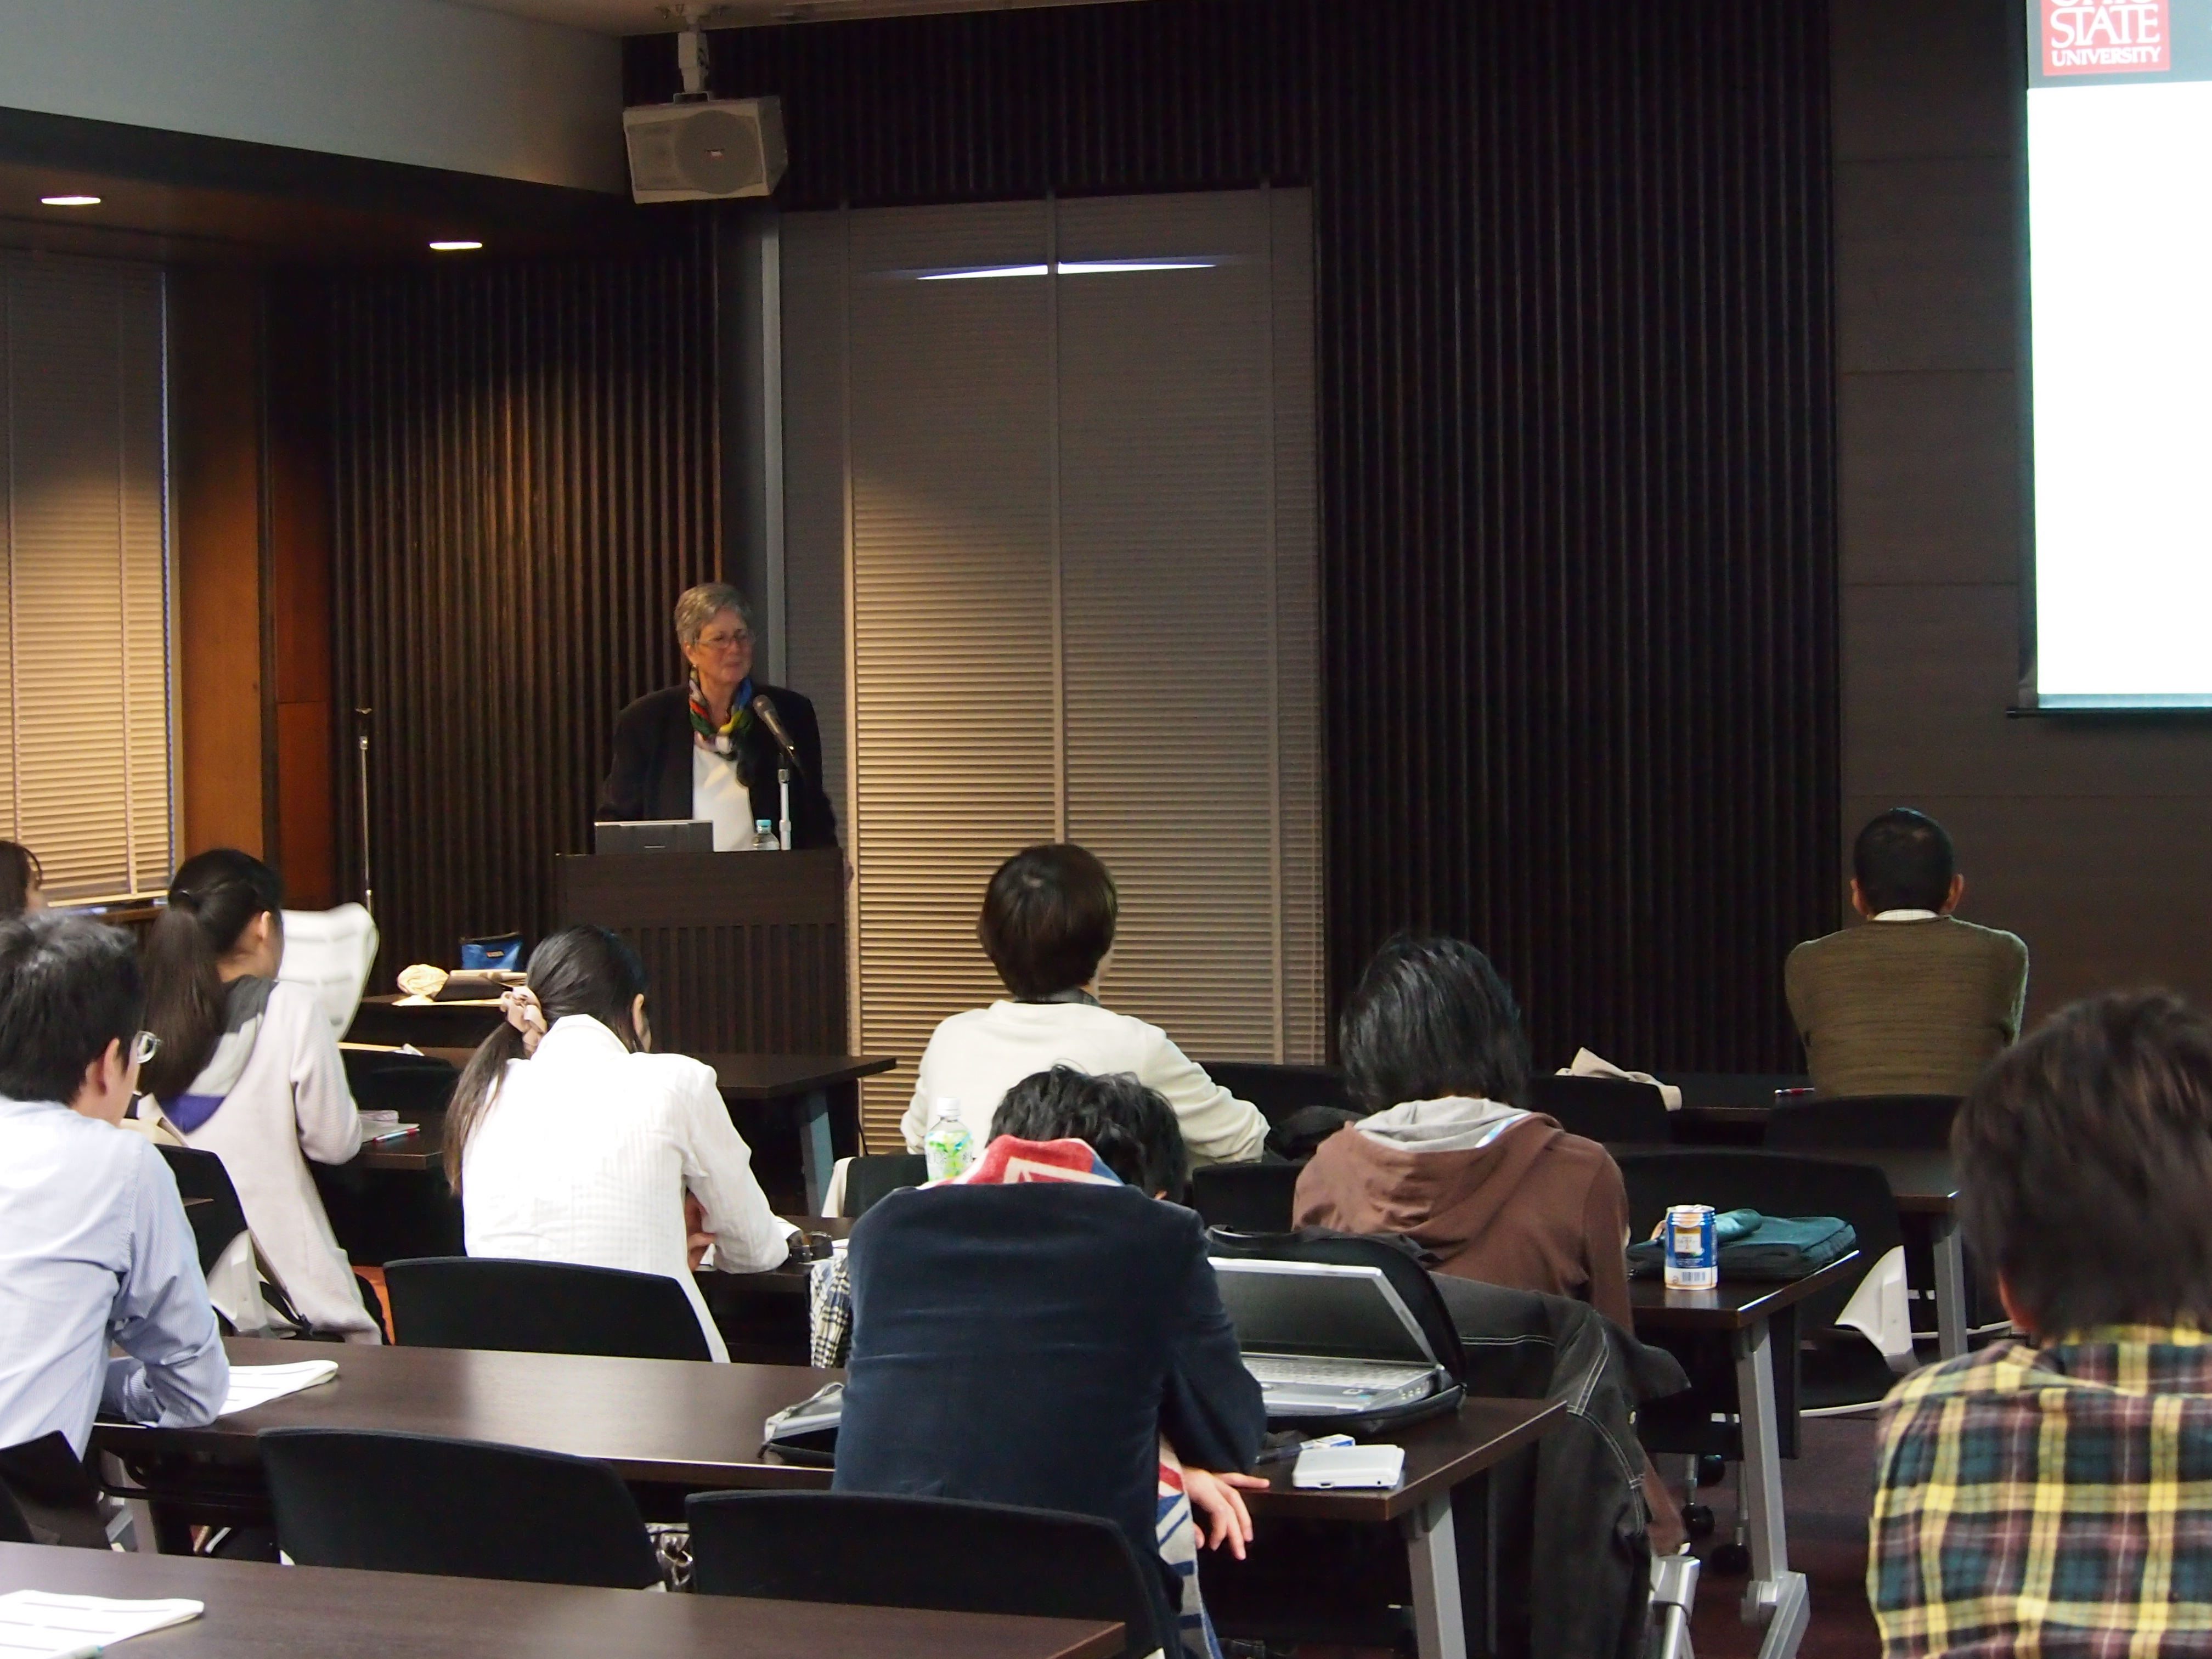 Lecture by Prof. Jeniffer Crocker(Ohio State University) was held on November 1, 2012.